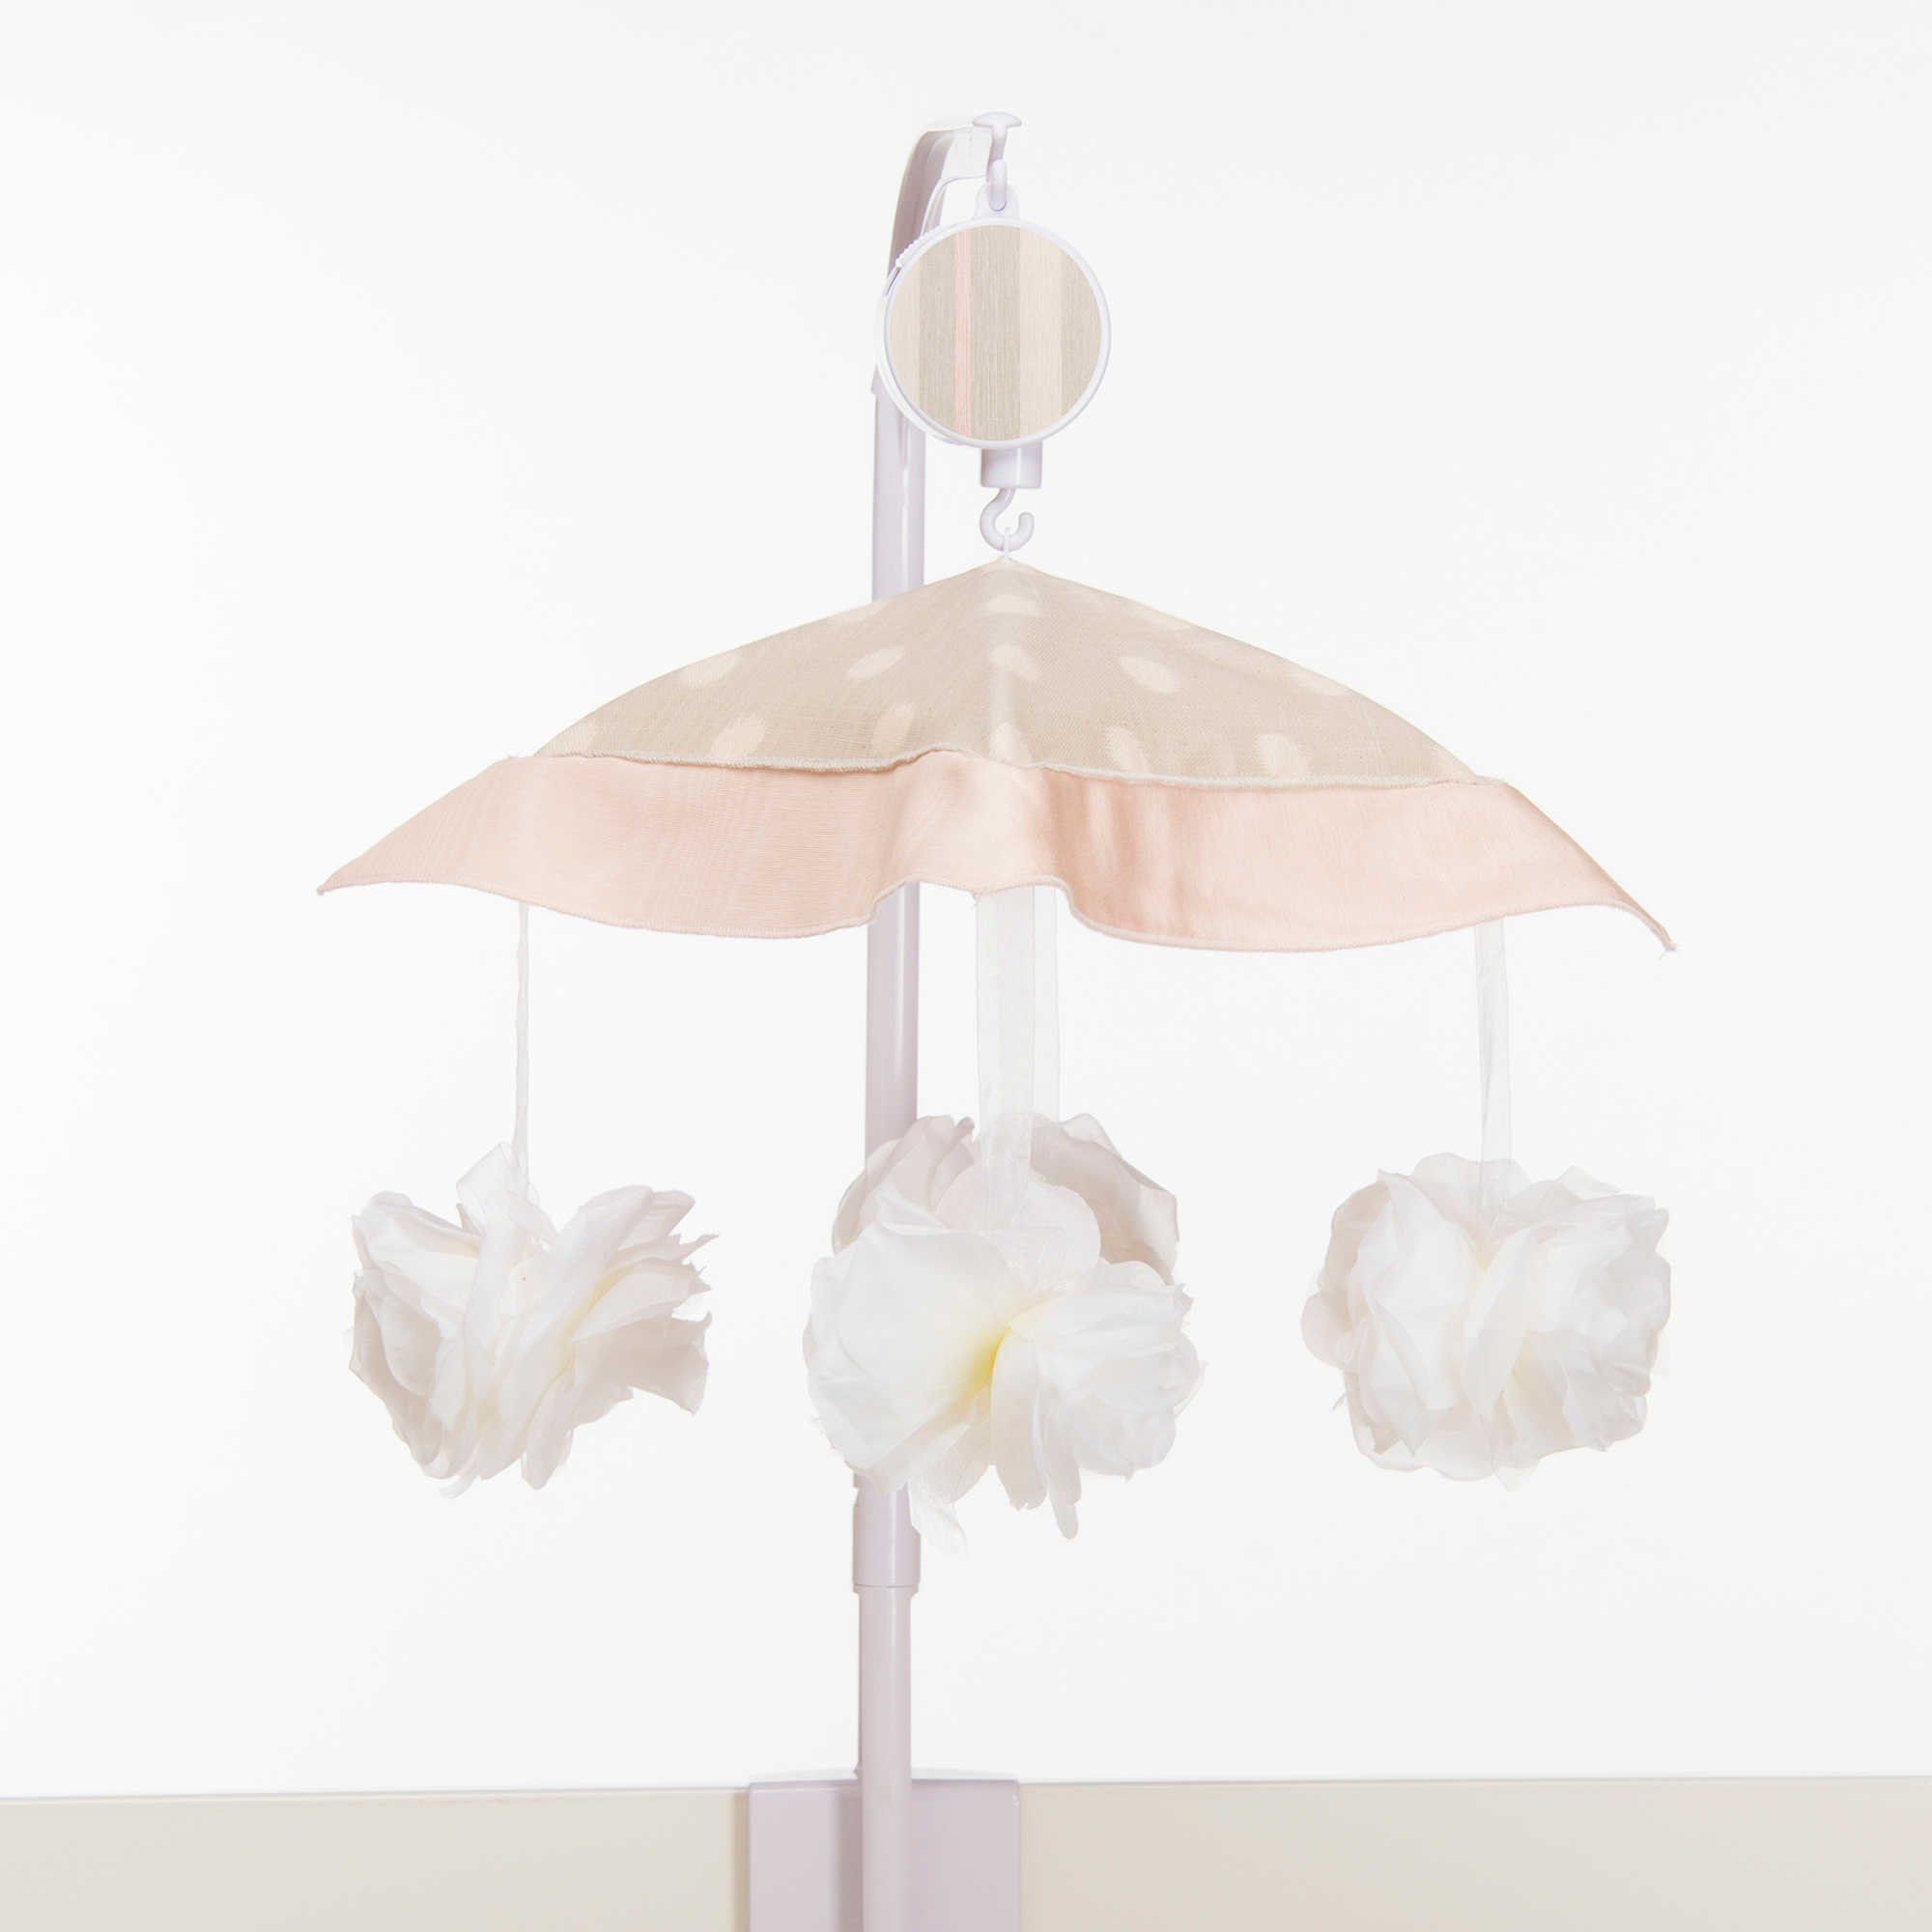 Modern Style Sing in Lullaby Musical Mobile with Decorative Flowers Under a Fabric Canopy (arm cover sold separately)